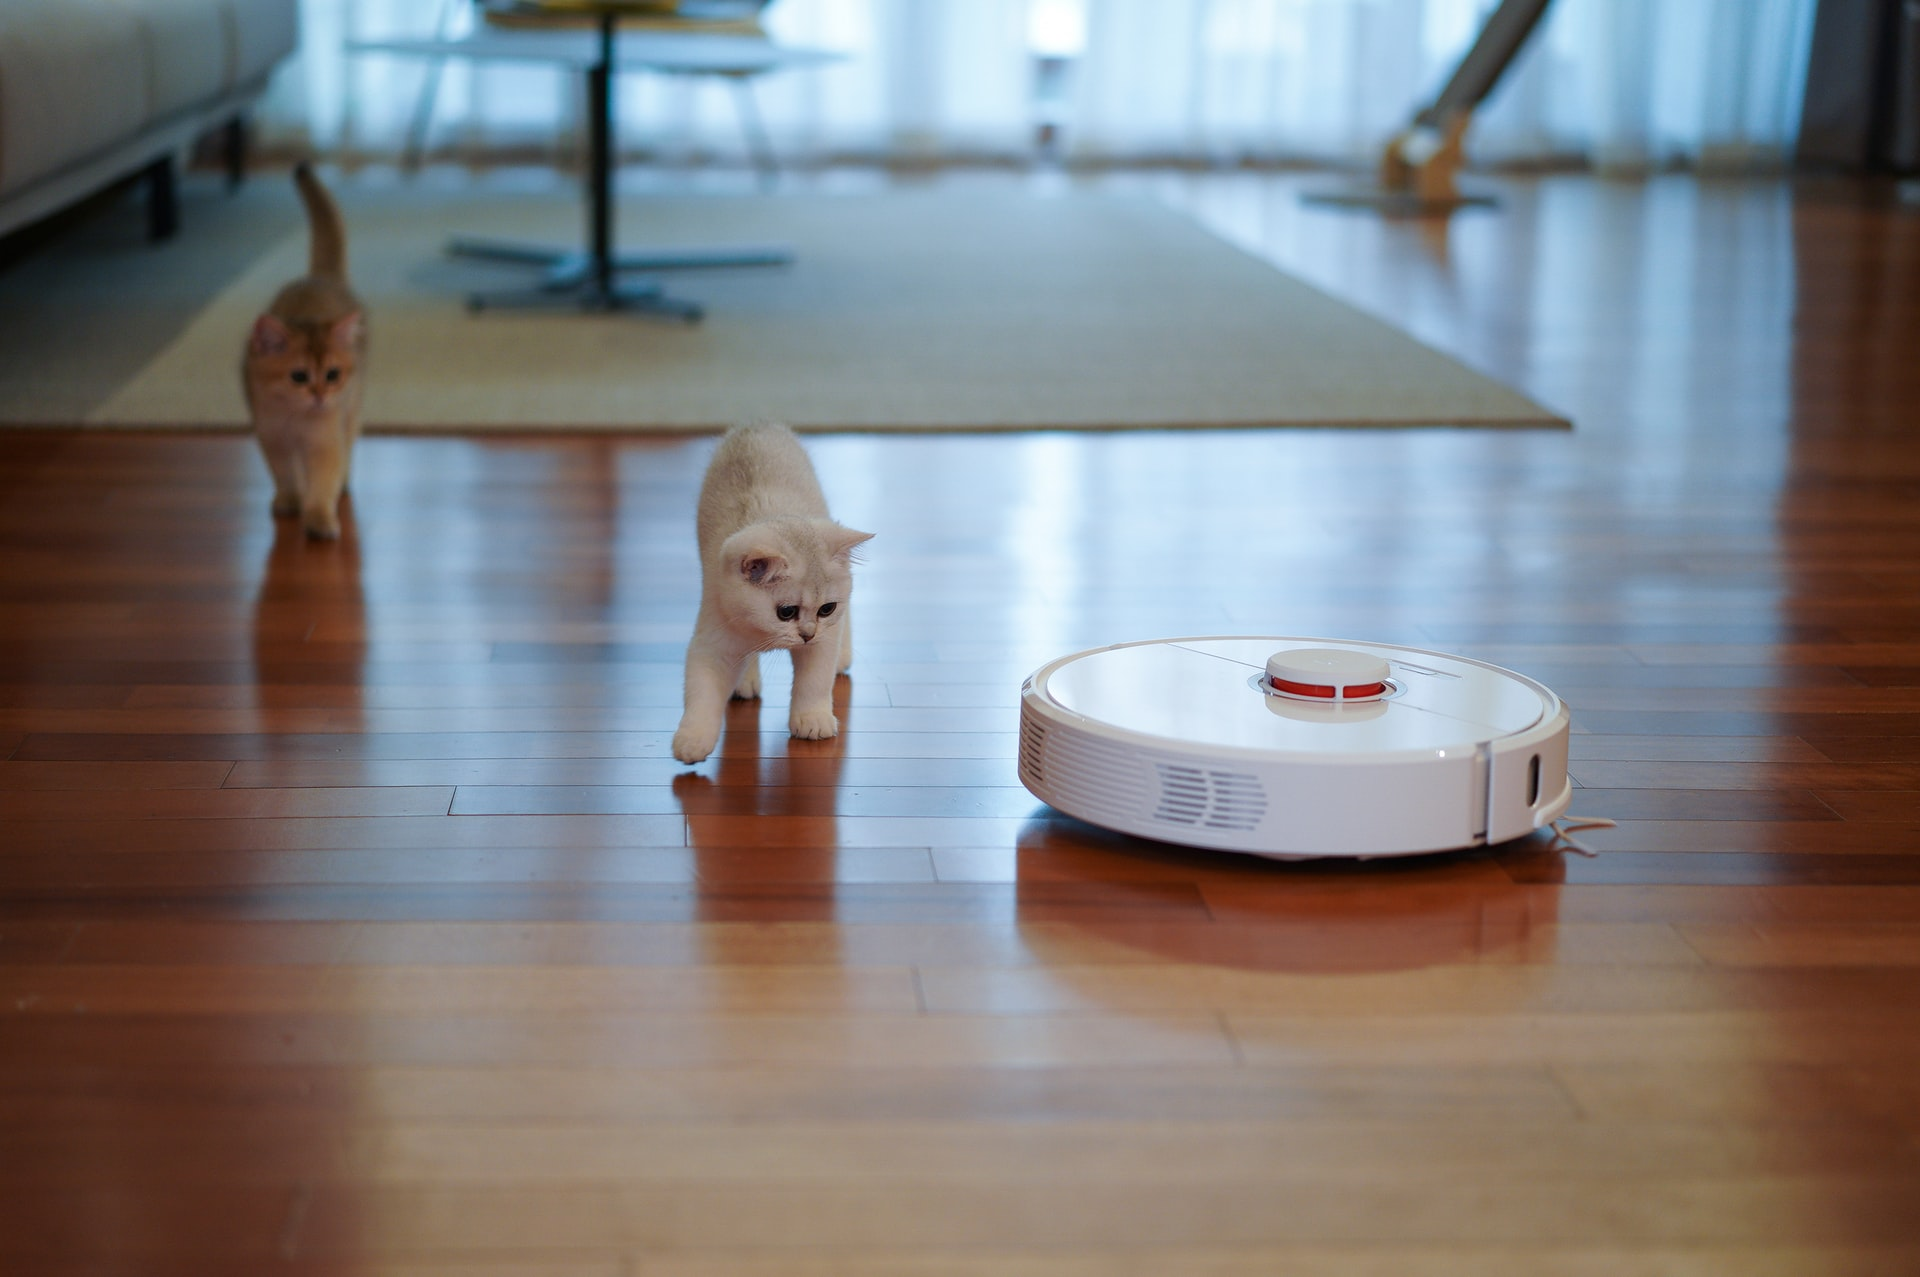 robot vs traditional vacuum